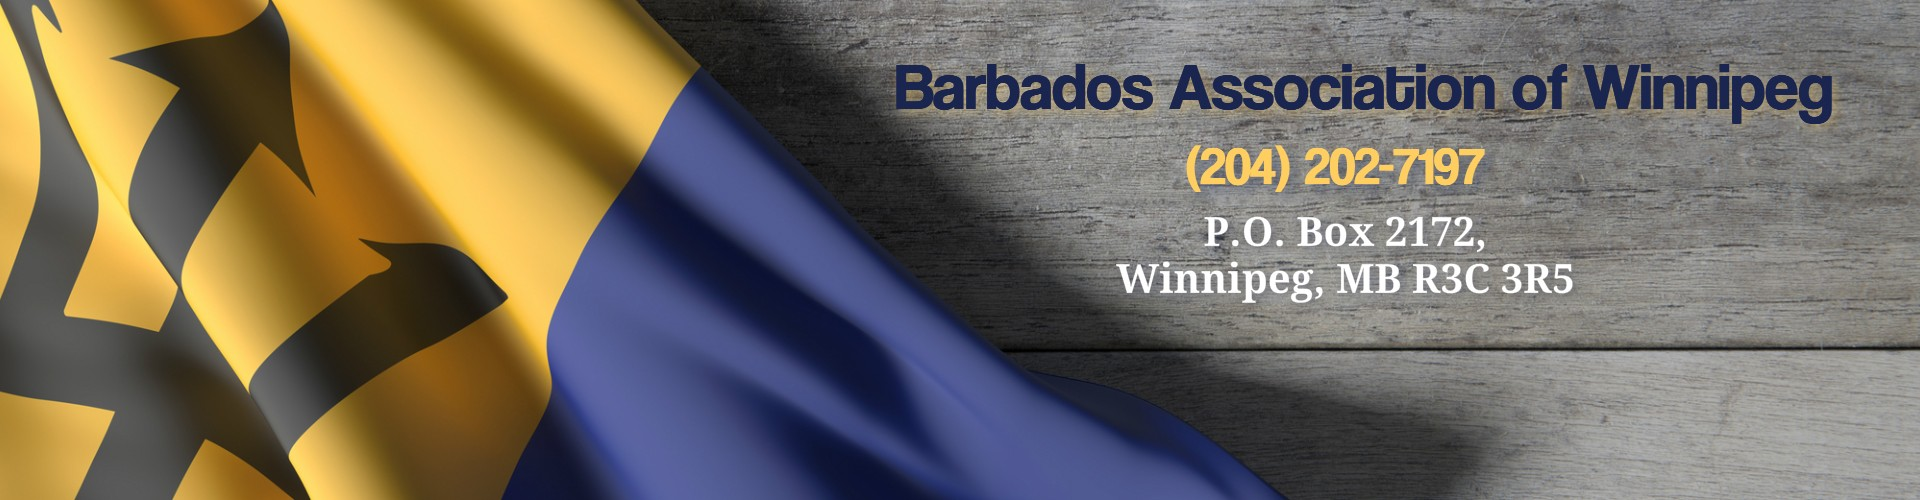 Barbados Association of Winnipeg HEADER IMAGE